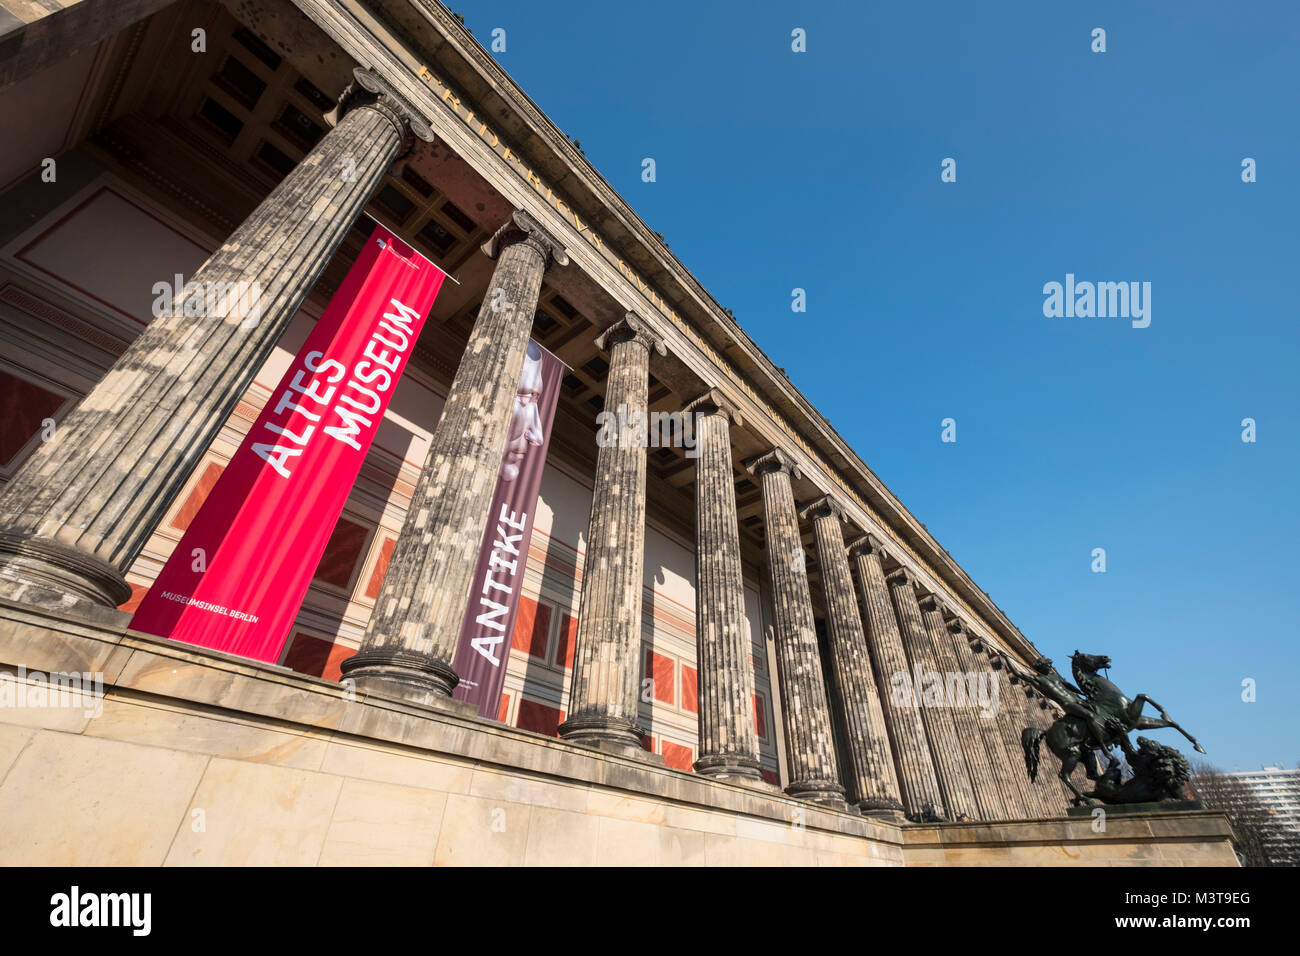 exterior view of Altes Museum on Museum Island, Museumsinsel , in Mitte, Berlin, Germany - Stock Image